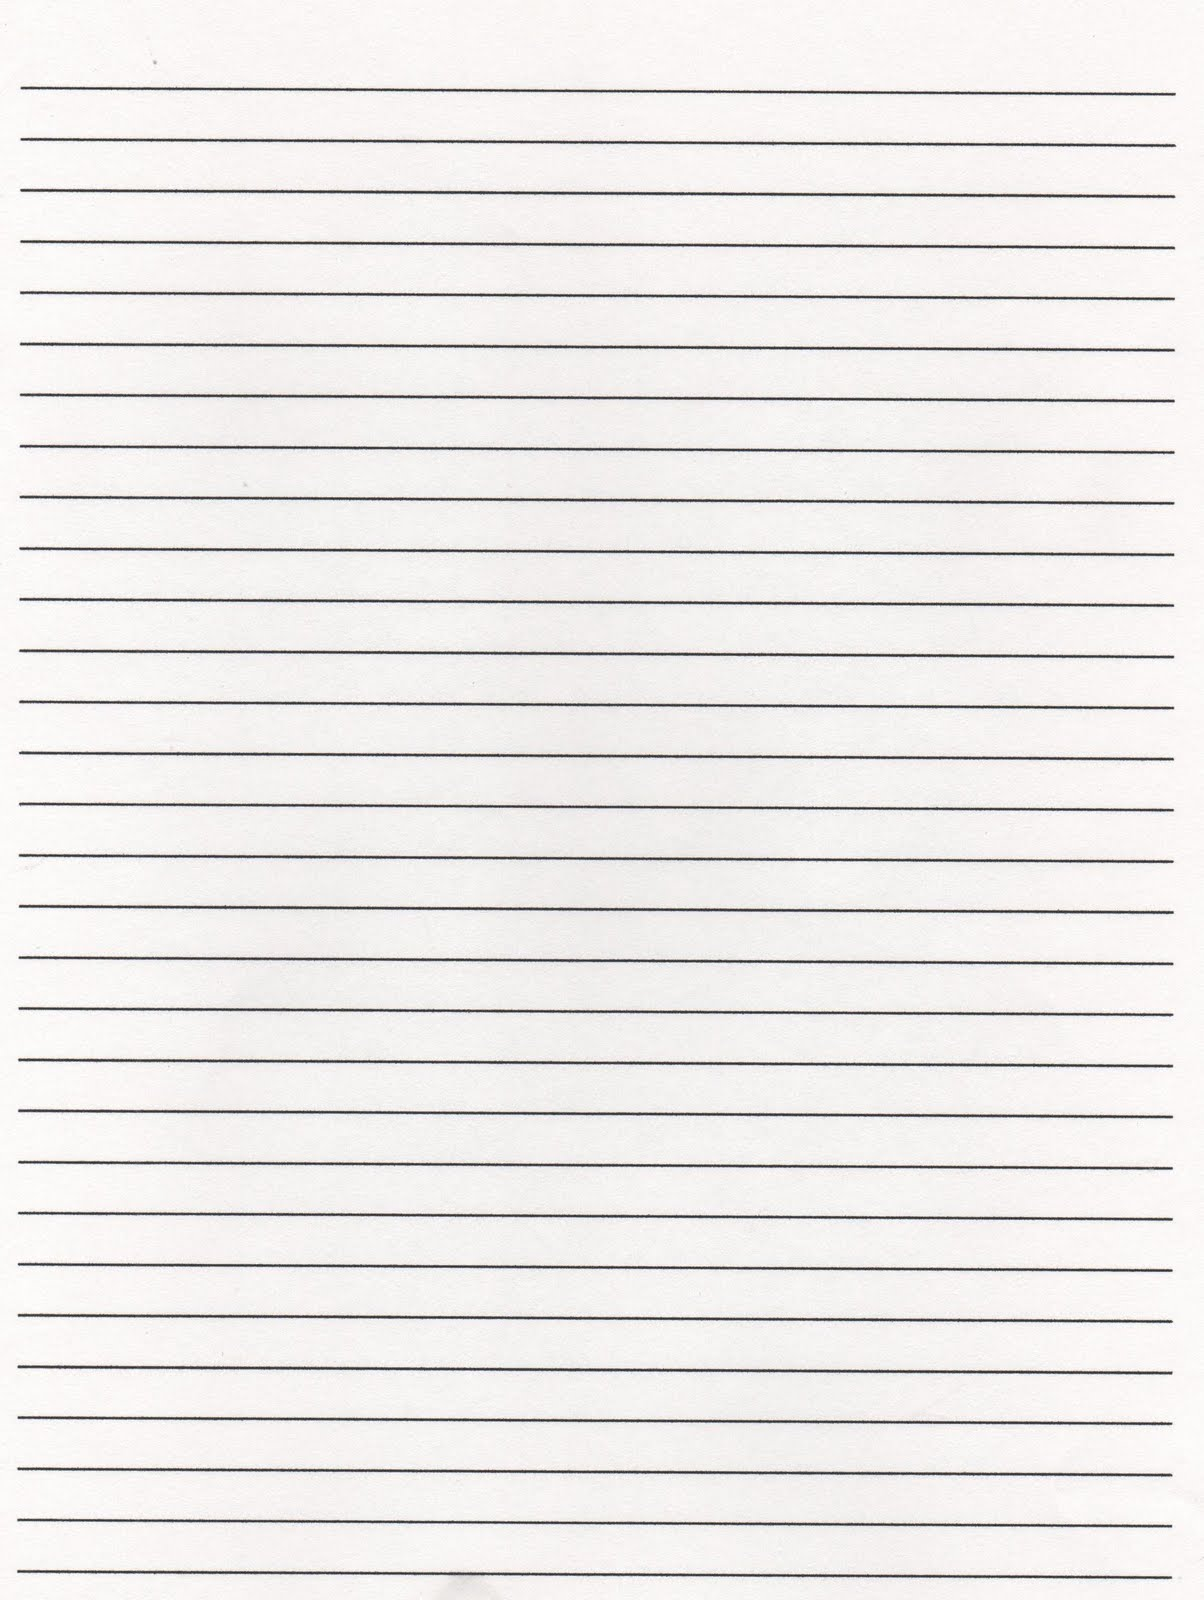 Elementary Lined Paper Template  Lined Writing Paper